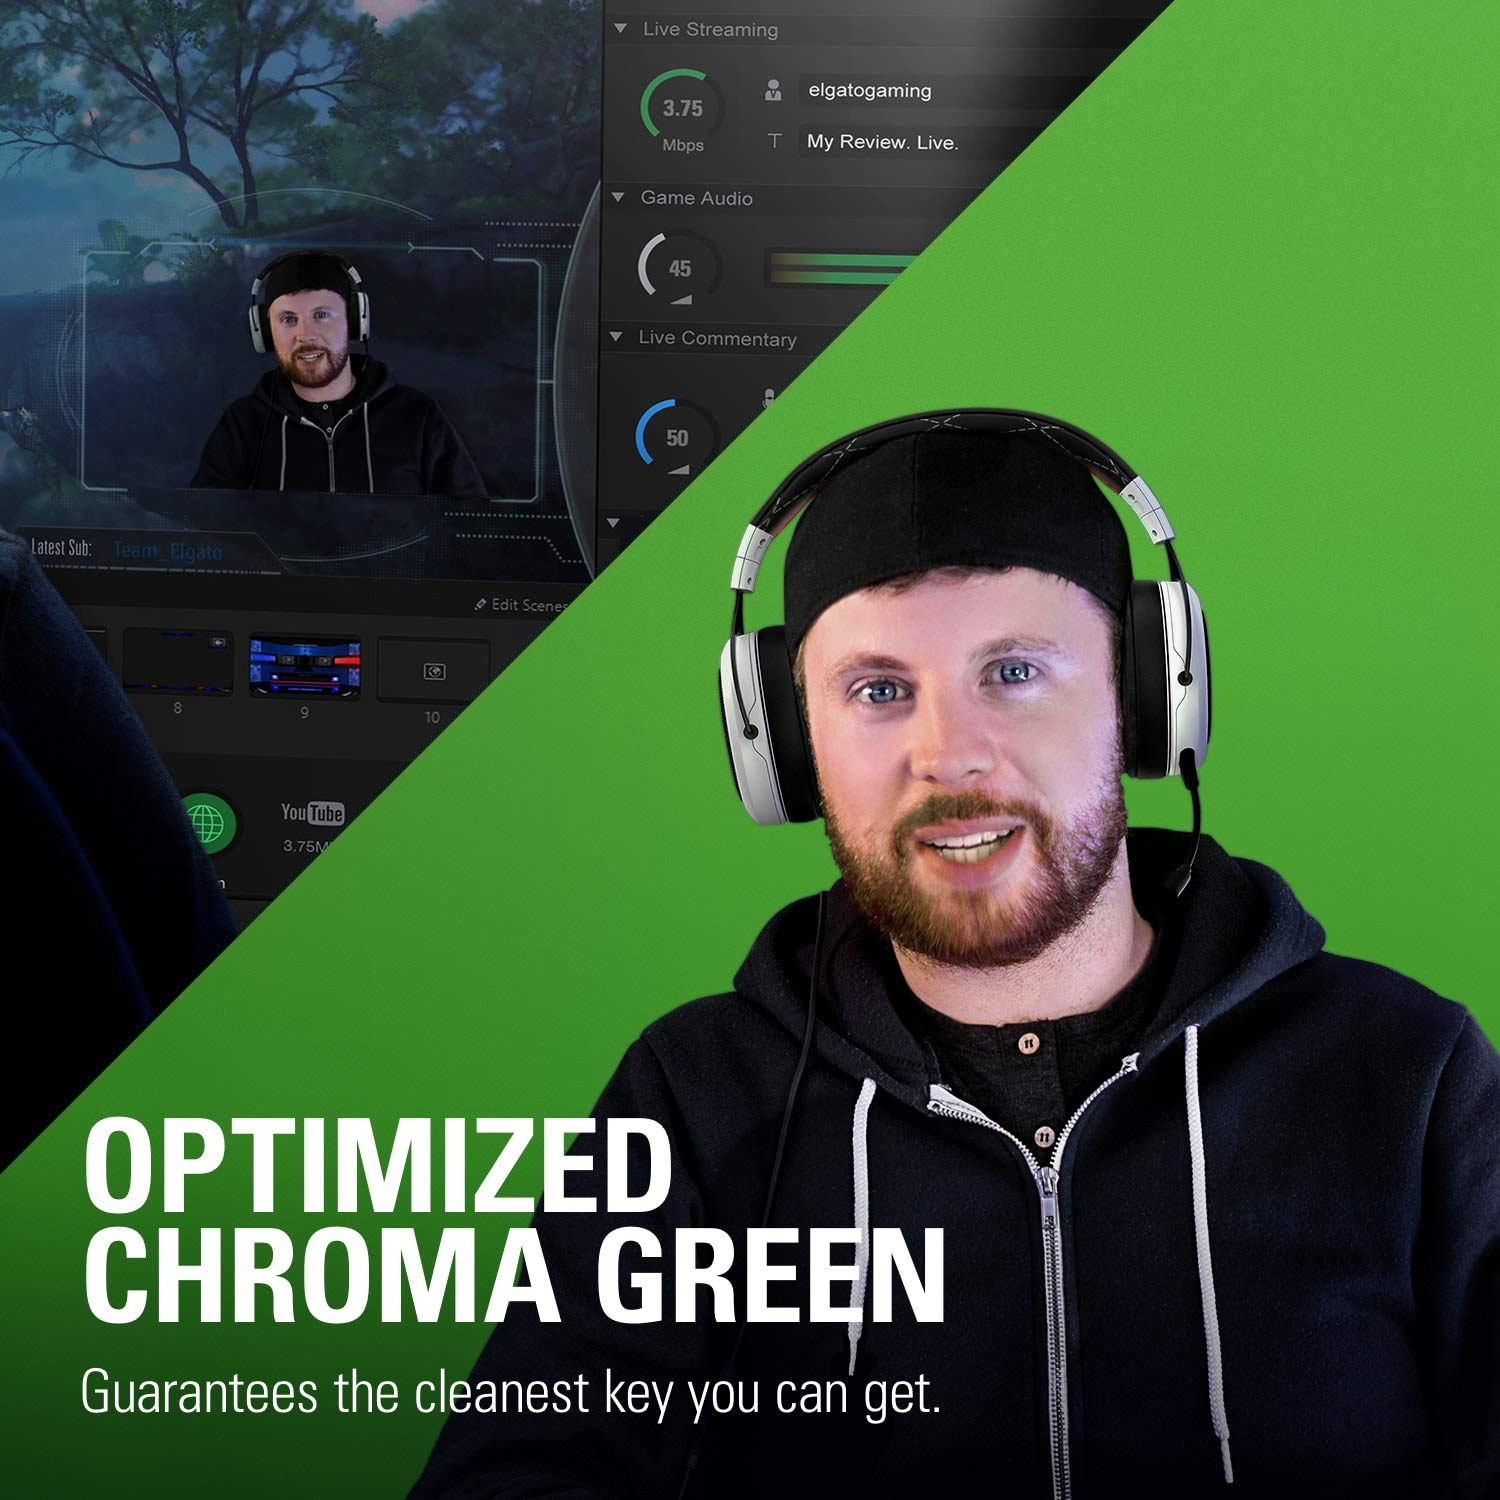 Corsair Elgato Green Screen MT - Mountable Chroma Key Panel for Background Removal, Wrinkle-Resistant Chroma-Green Fabric by Corsair (Image #6)